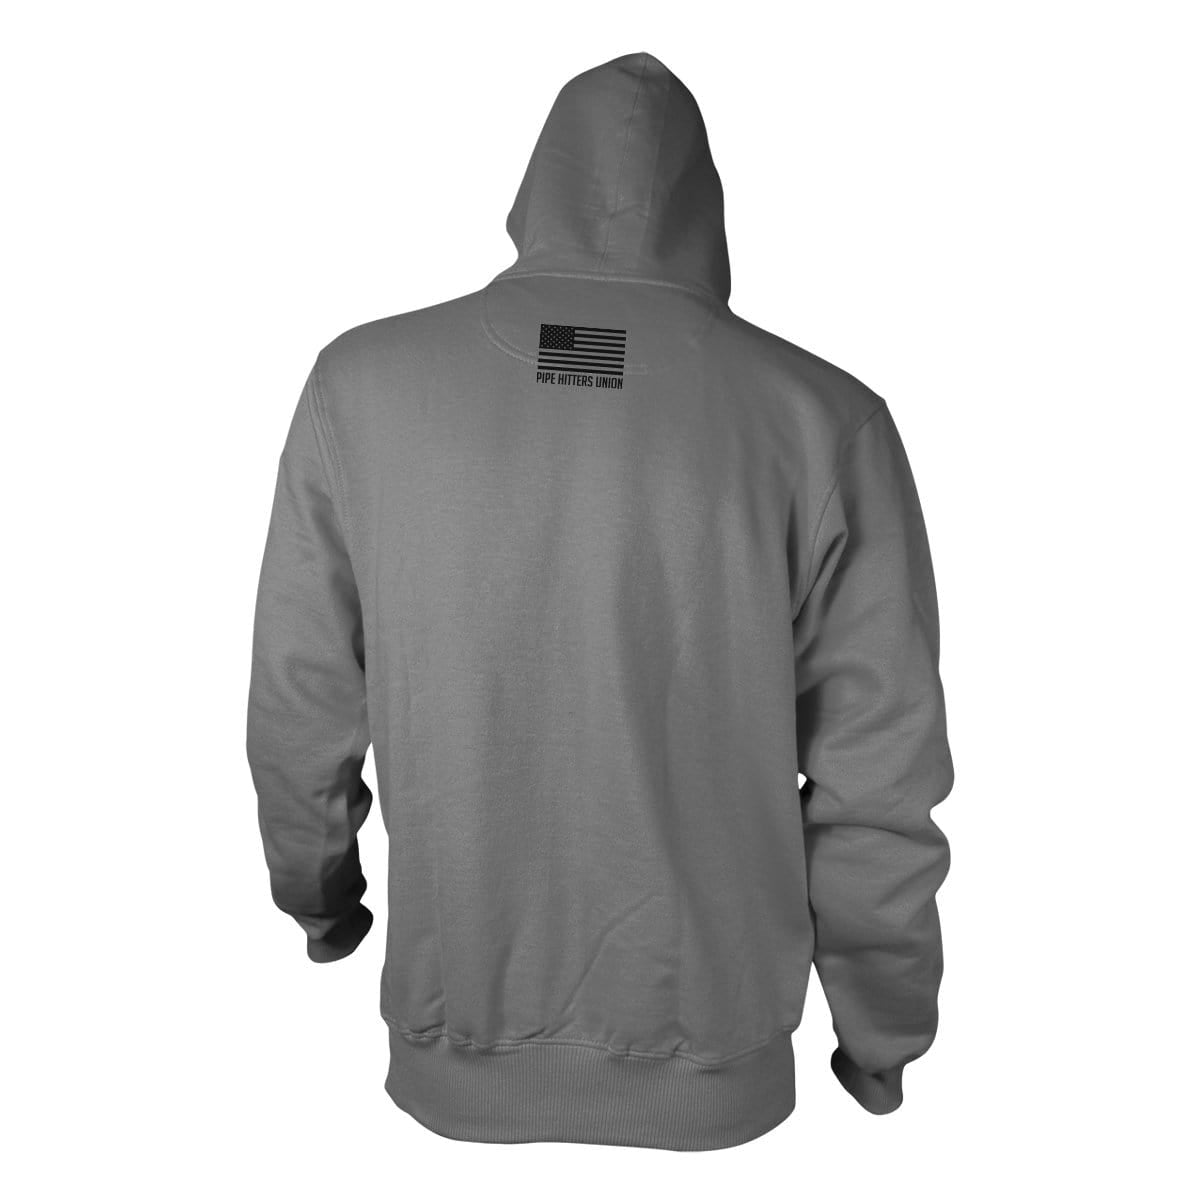 Original Pipe Hitter - Ronnie Hoodie -  - Hoodies - Pipe Hitters Union